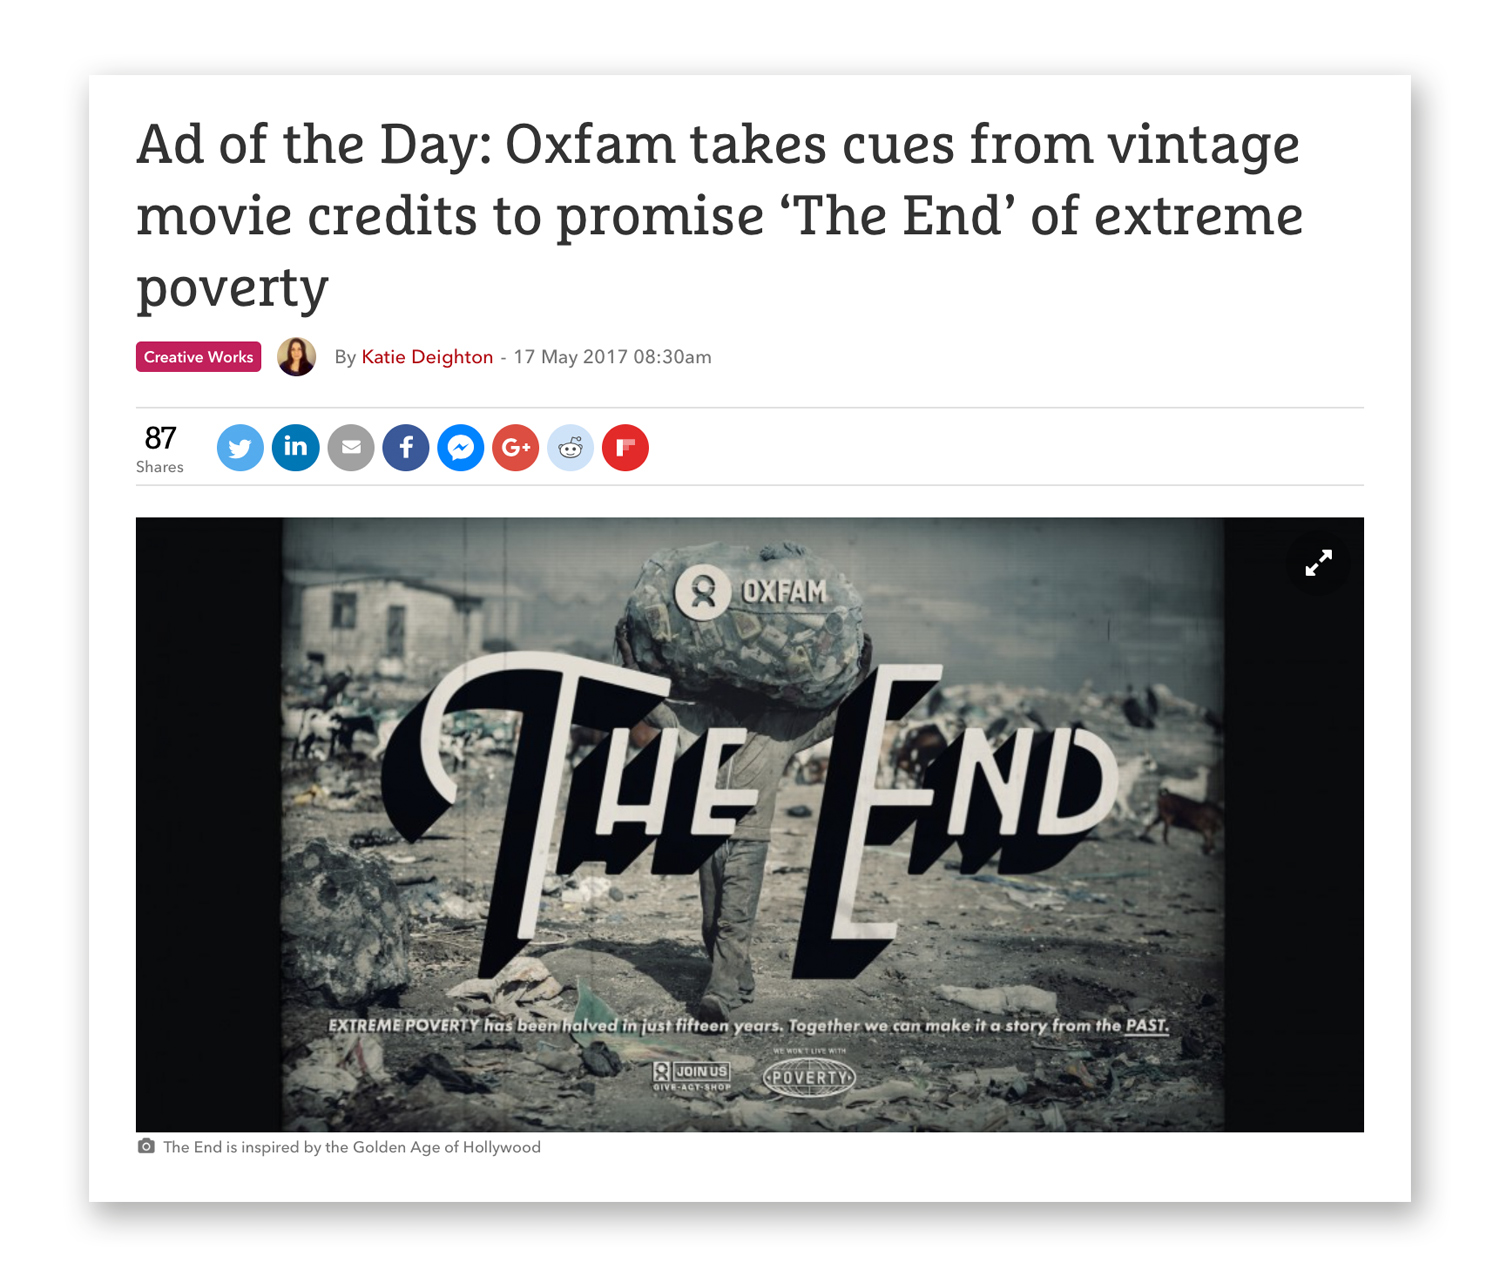 Oxfam_TheEnd_TheDrum_AdOfTheDay.jpg